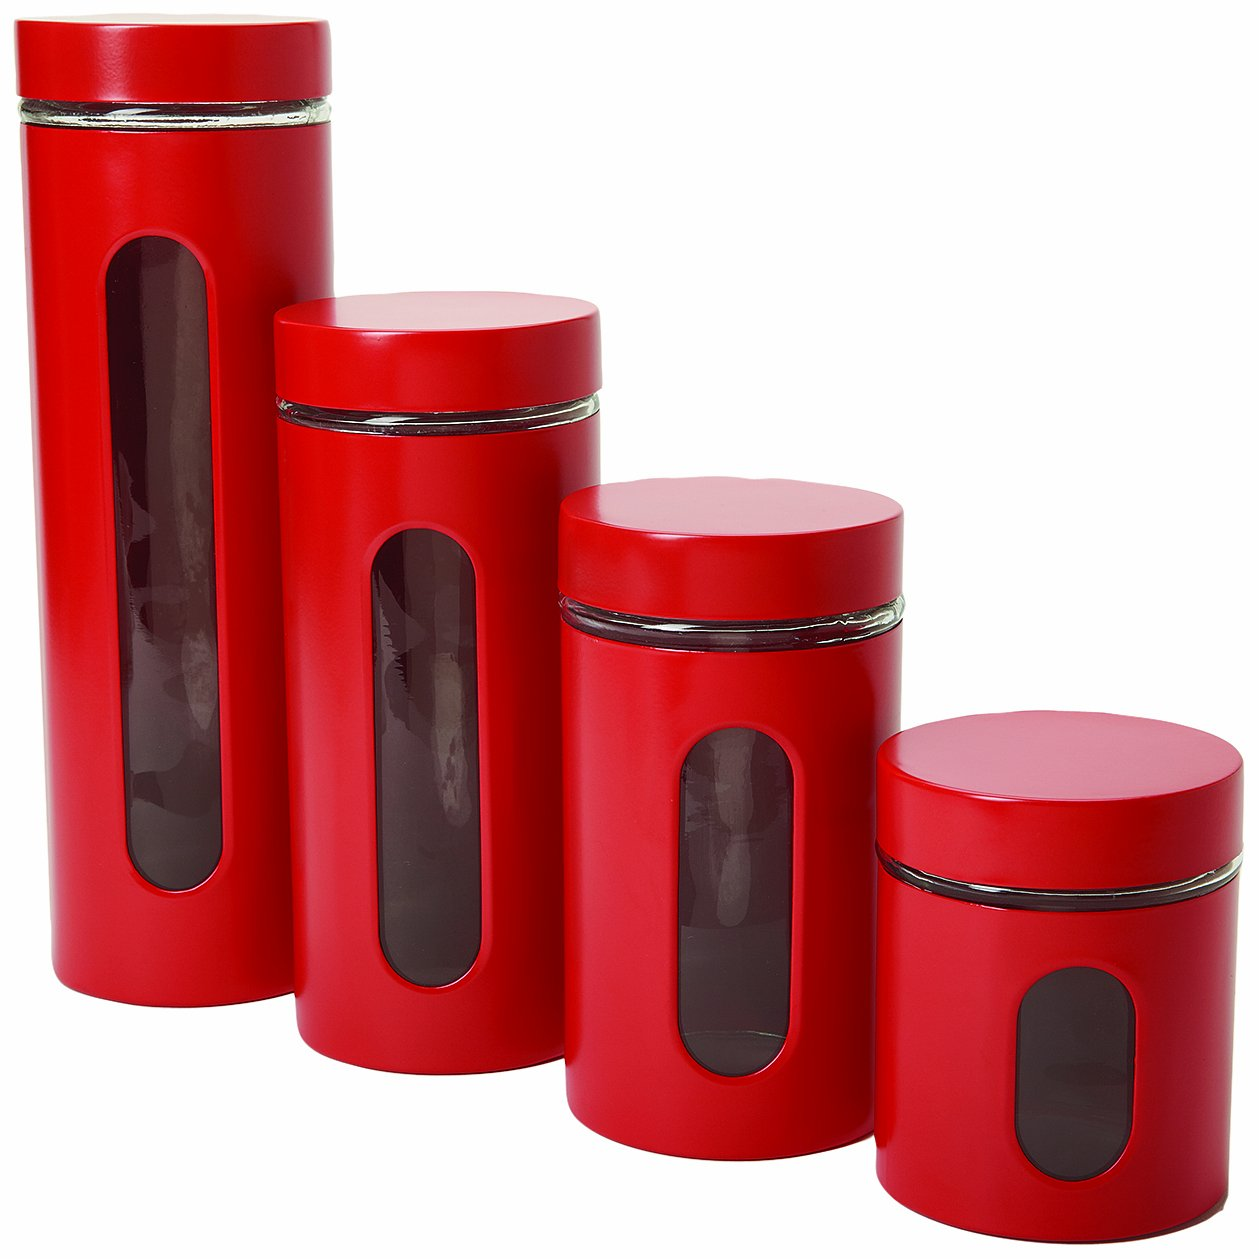 Anchor Hocking Palladian Glass and Stainless Steel Canister Set with Airtight Lids, Cherry, 4-Piece Set 97561